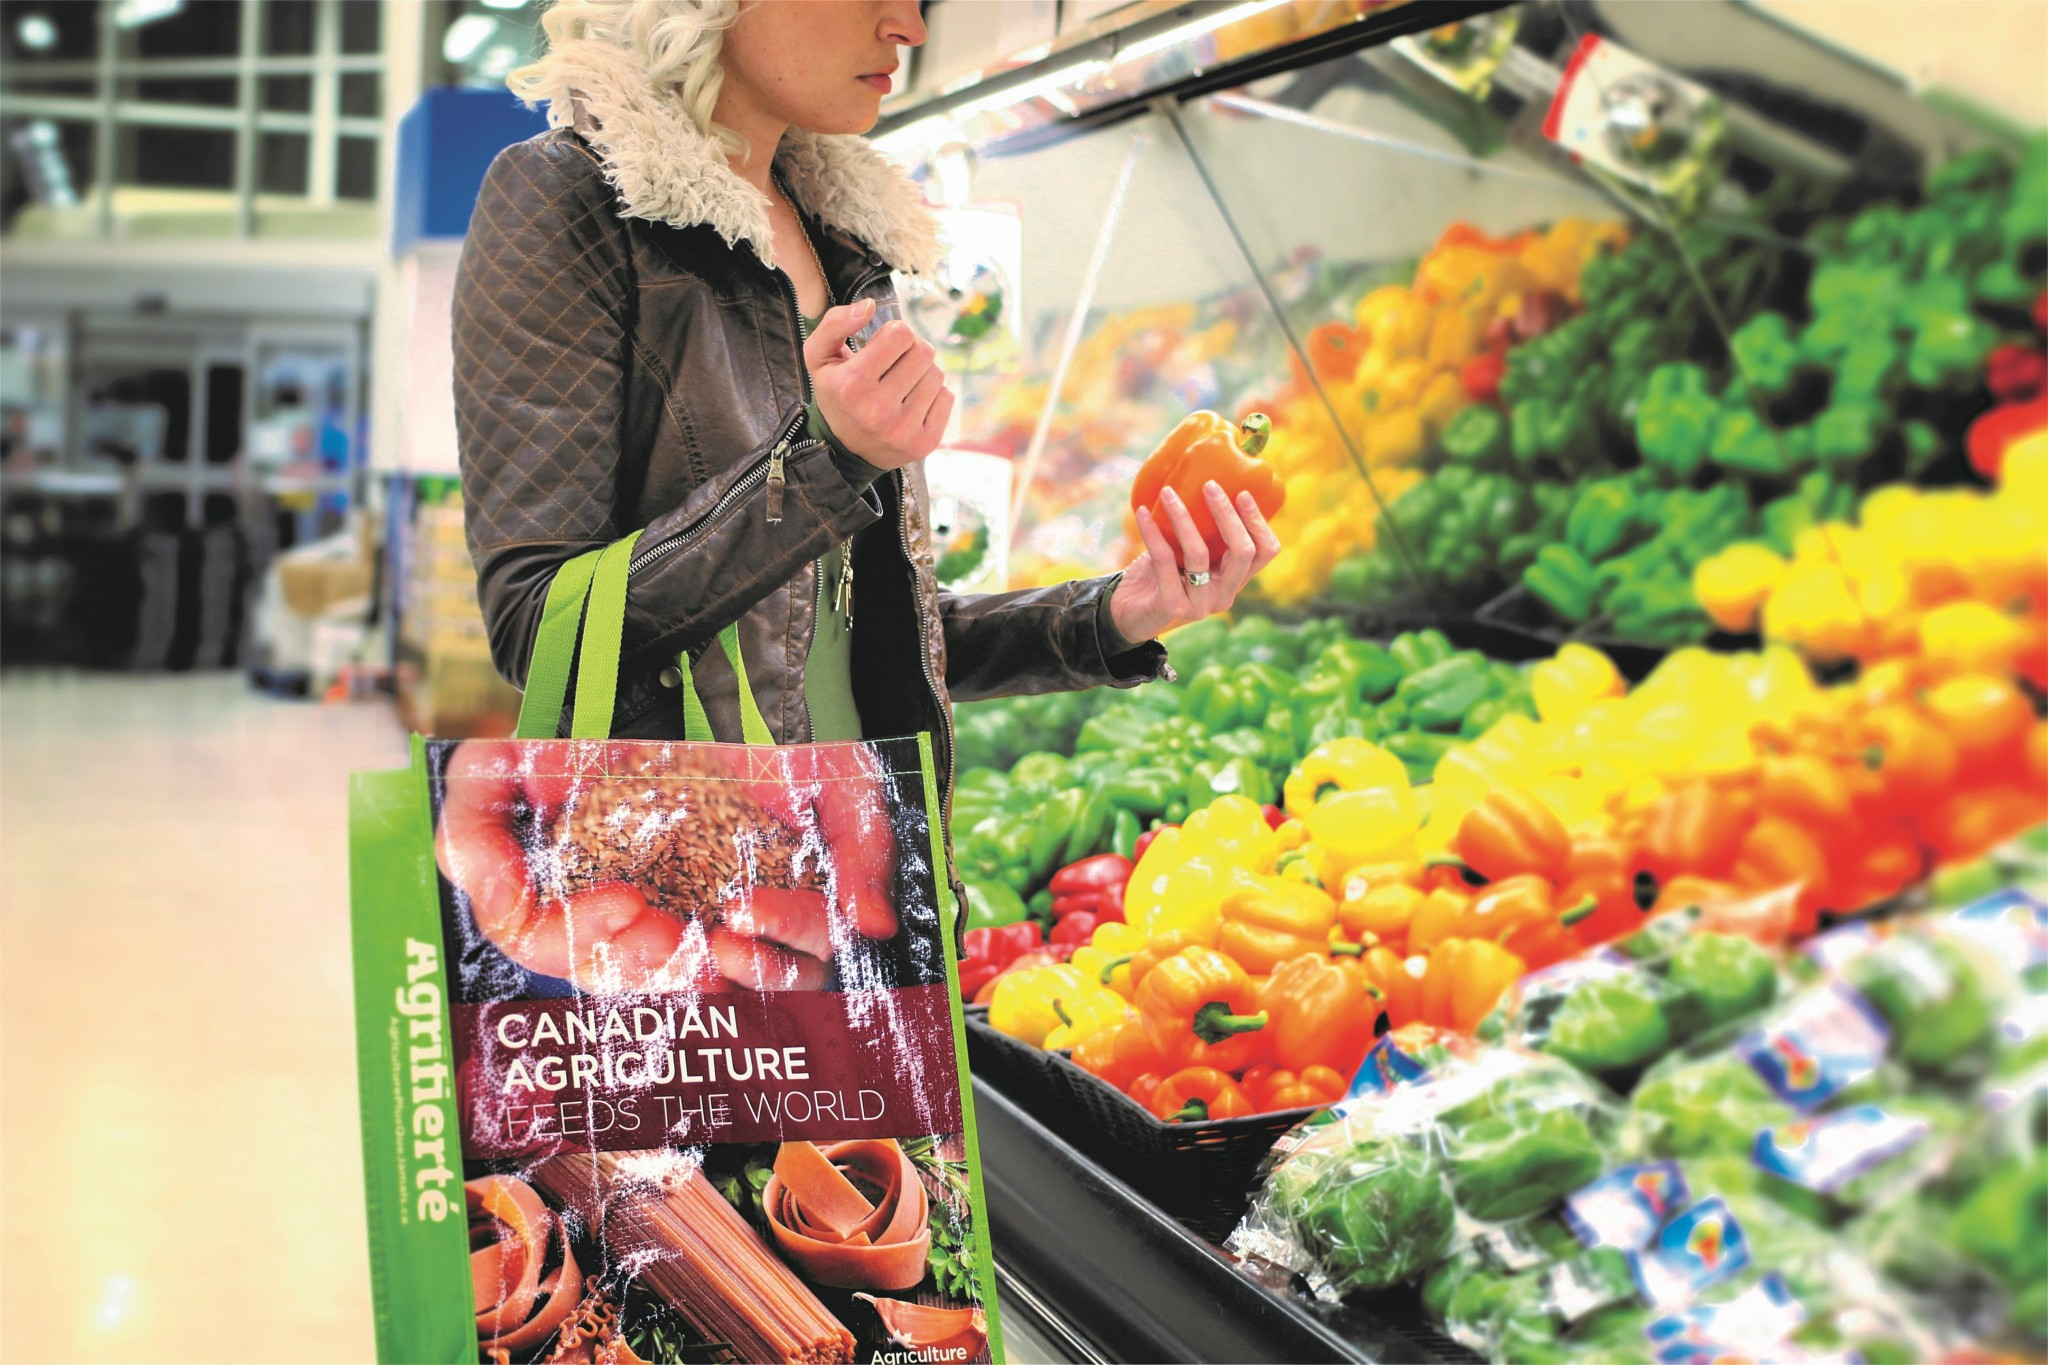 You can spread the word by using your Ag More Than Ever reusable shopping bag at the grocery store or farmers' market.